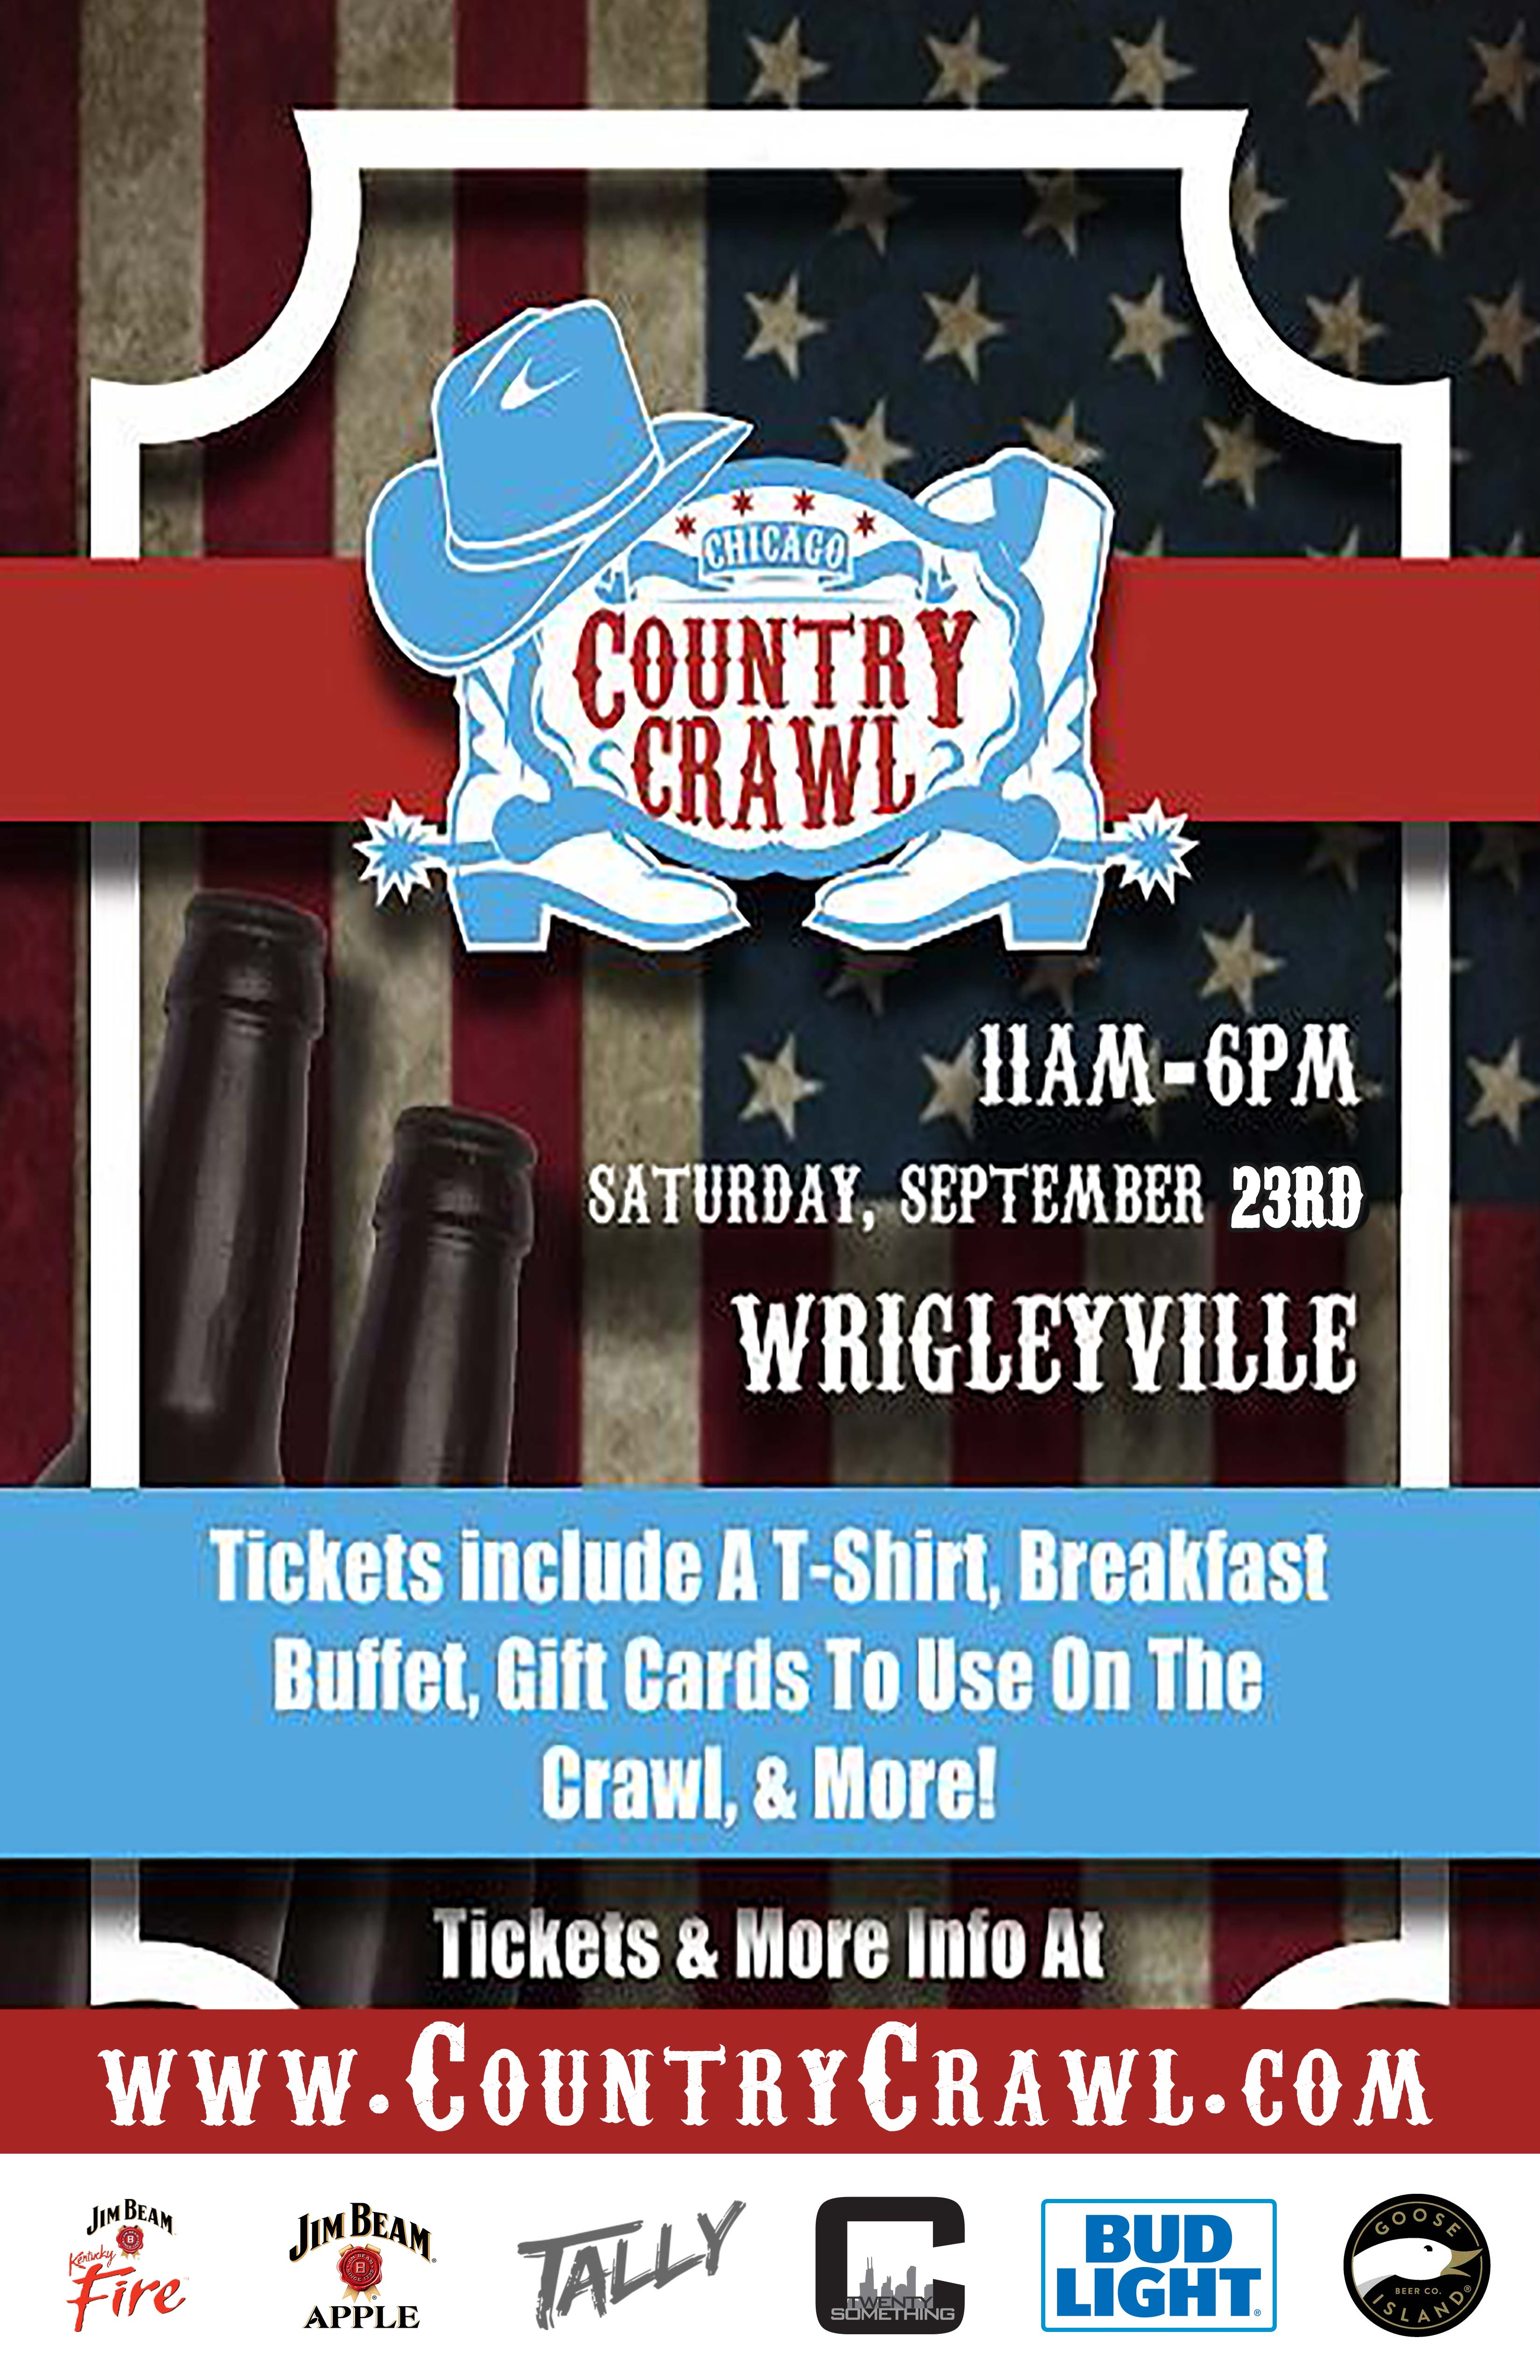 The Country Bar Crawl in Chicago - Tickets include a T-Shirt, Breakfast Buffet, Gift Cards to use on the Crawl & MORE!